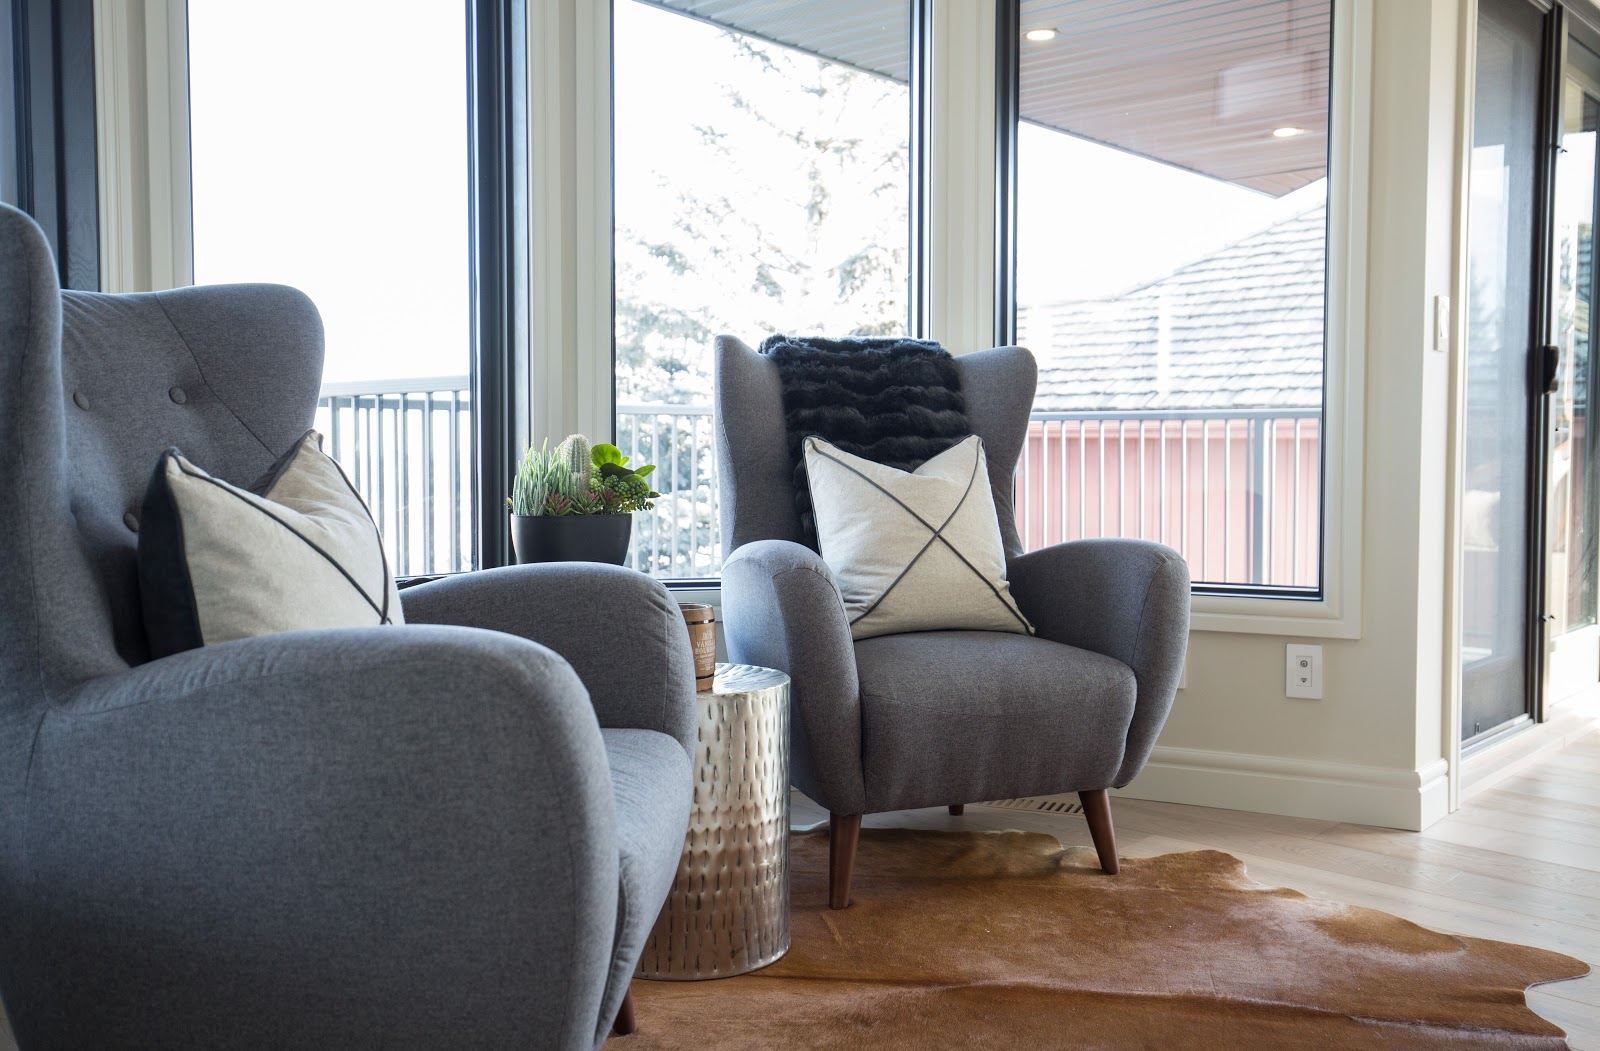 Calgary interior design modern traditional cosy elegant wingback chairs nook